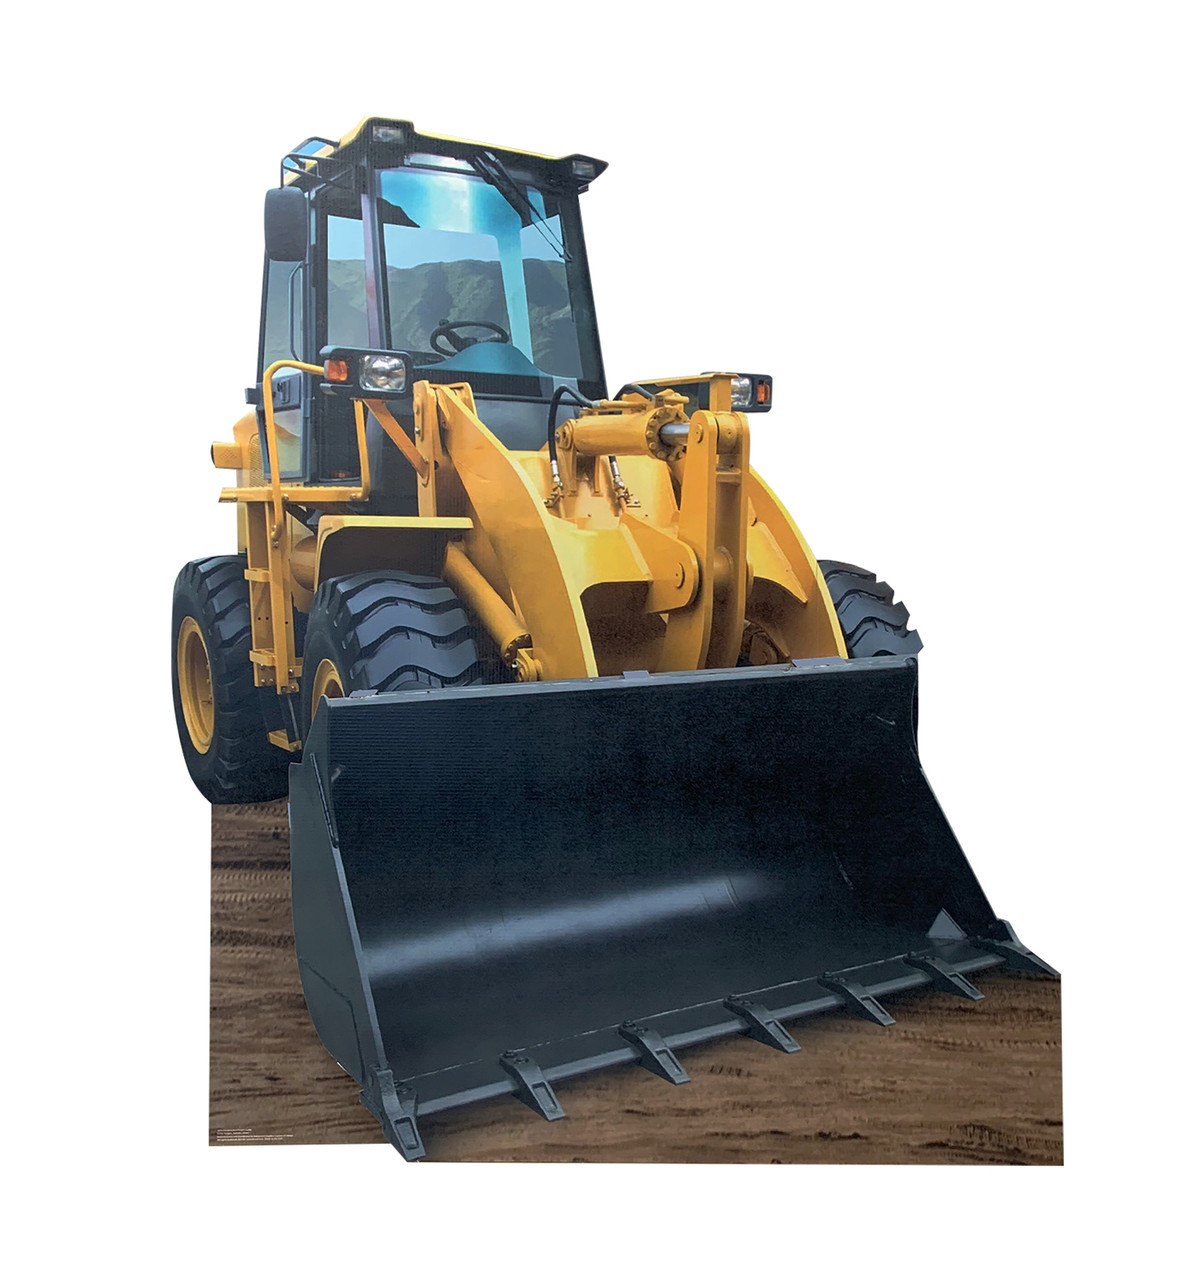 Life-size cardboard standee of construction front loader.